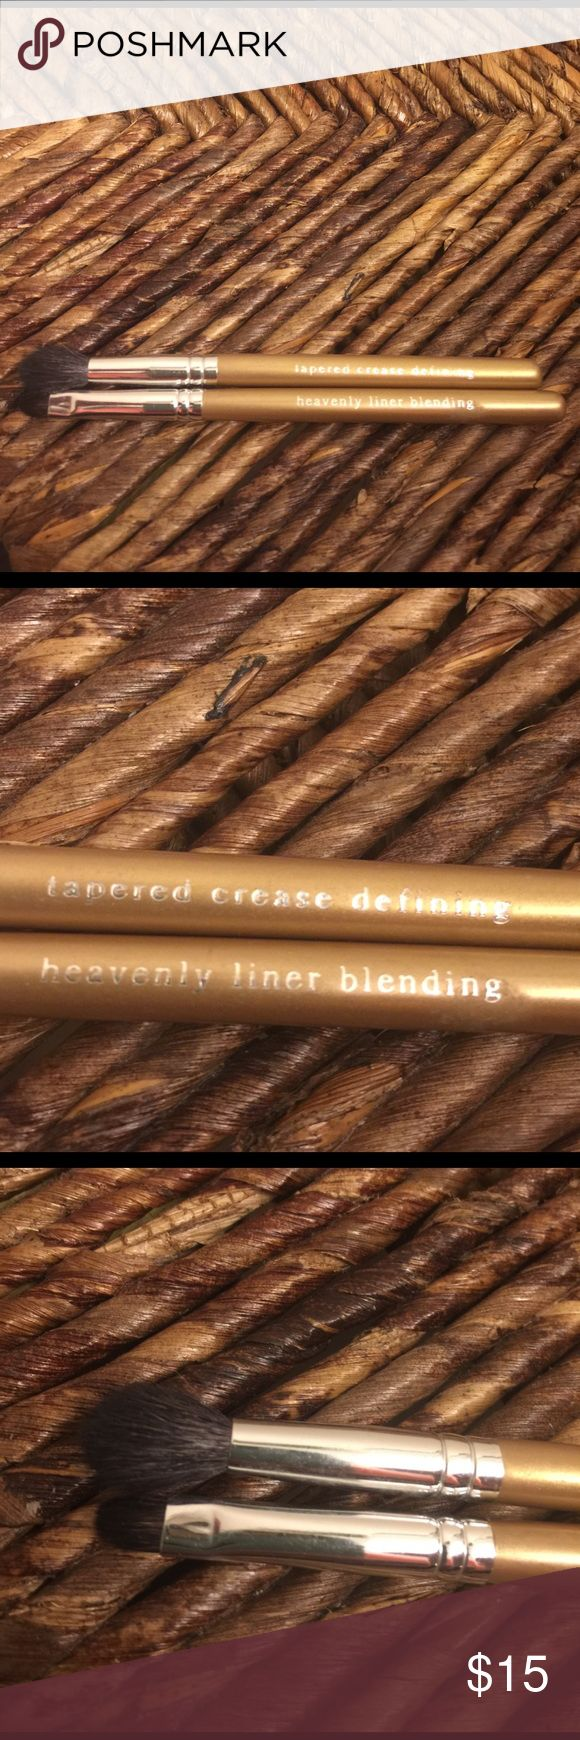 Bare Escentuals make up brush set The Heavenly Liner blending & tapered crease defining brush. The brushes have been gently used and are very well taken care of. Look 👀 at pics, as they are part of the description also :) Bare Escentuals Makeup Brushes & Tools